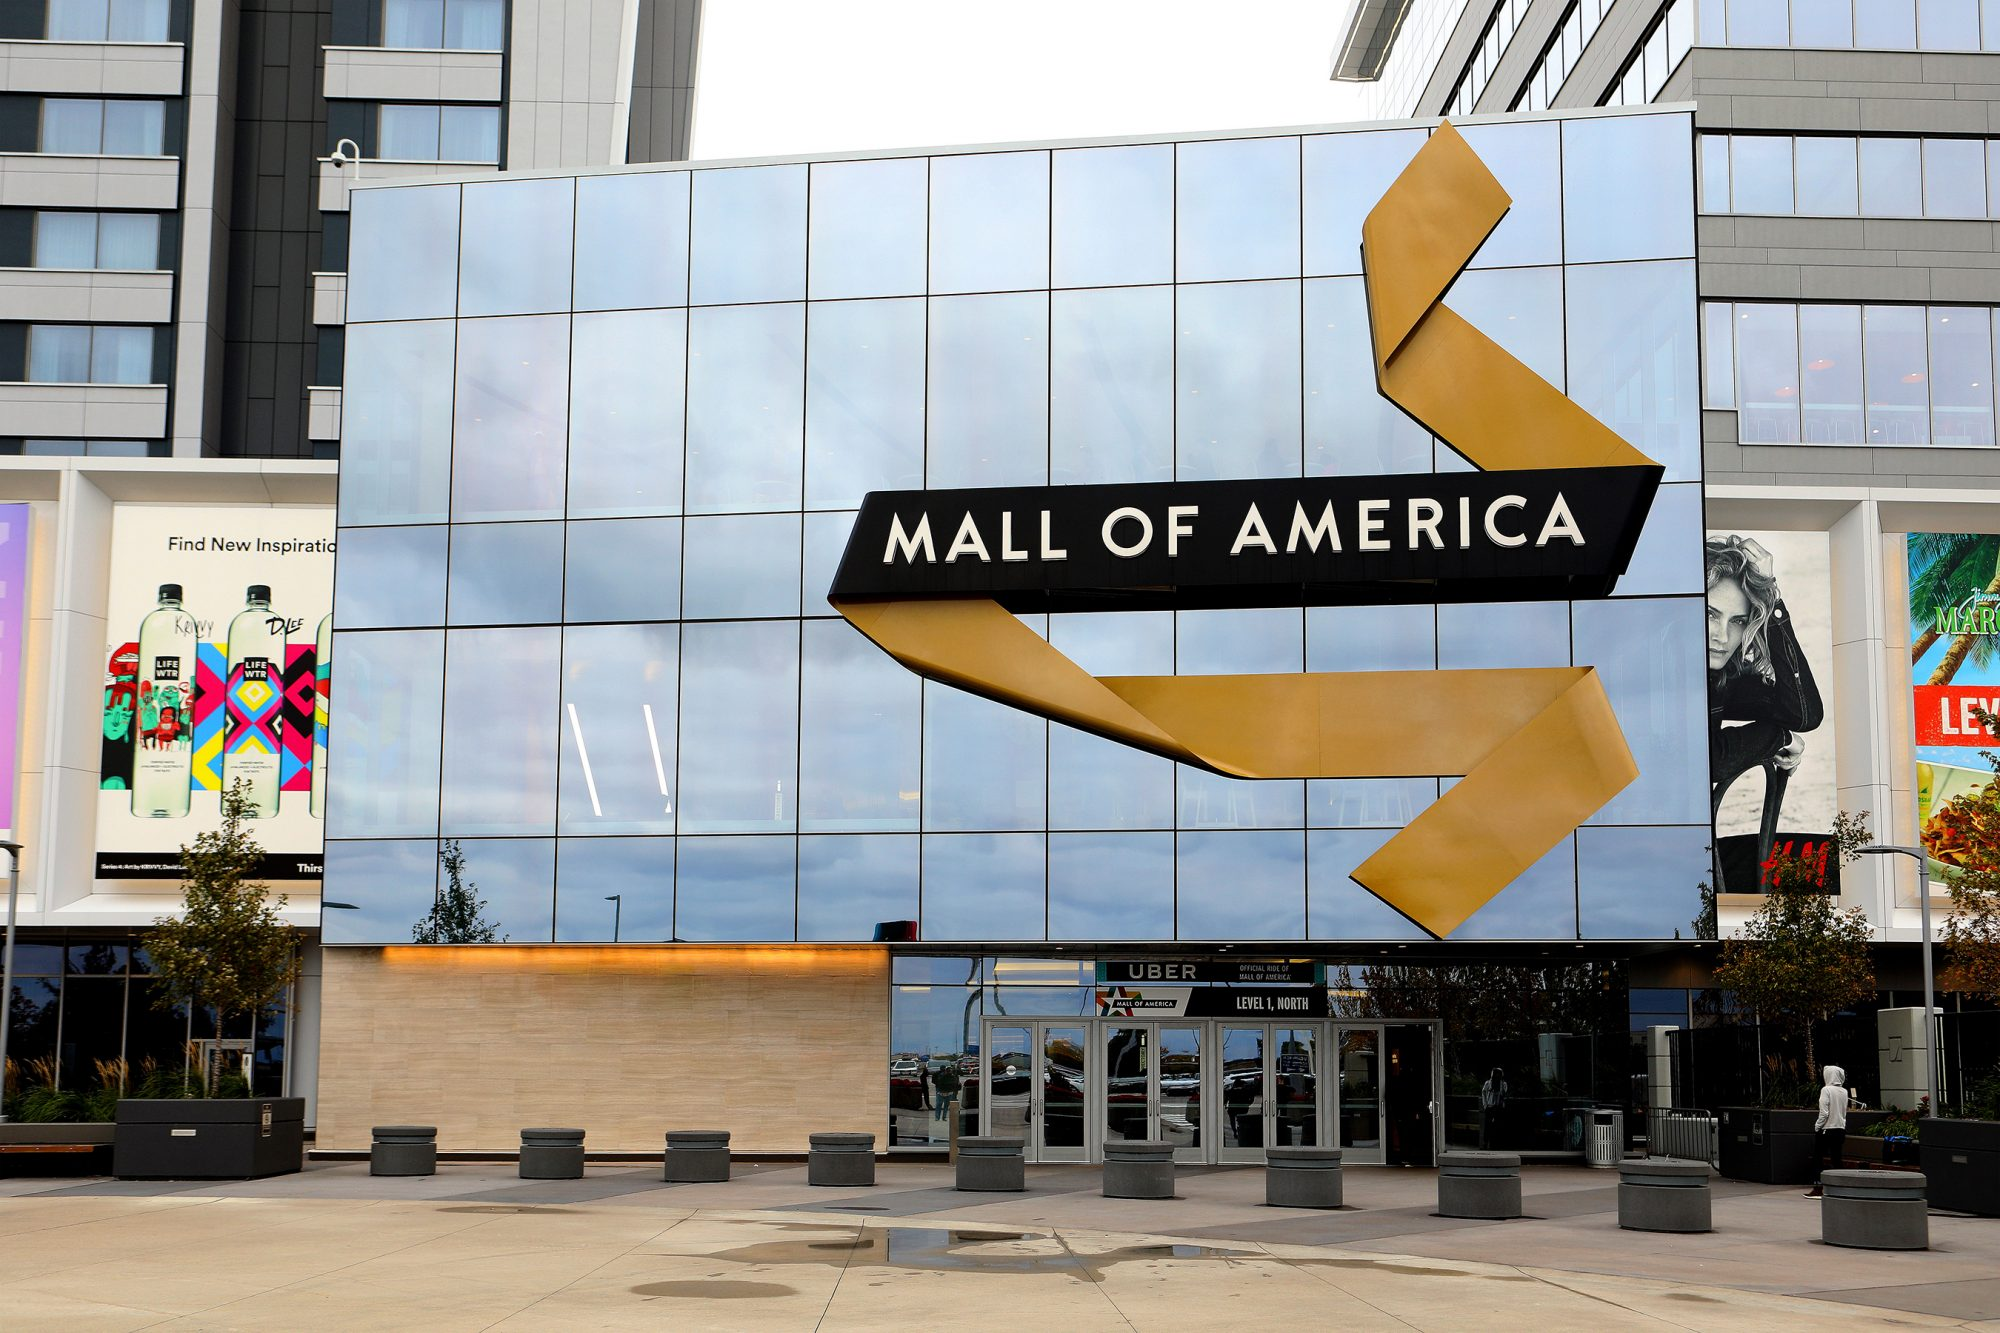 North entrance to Mall Of America in Bloomington, Minnesota